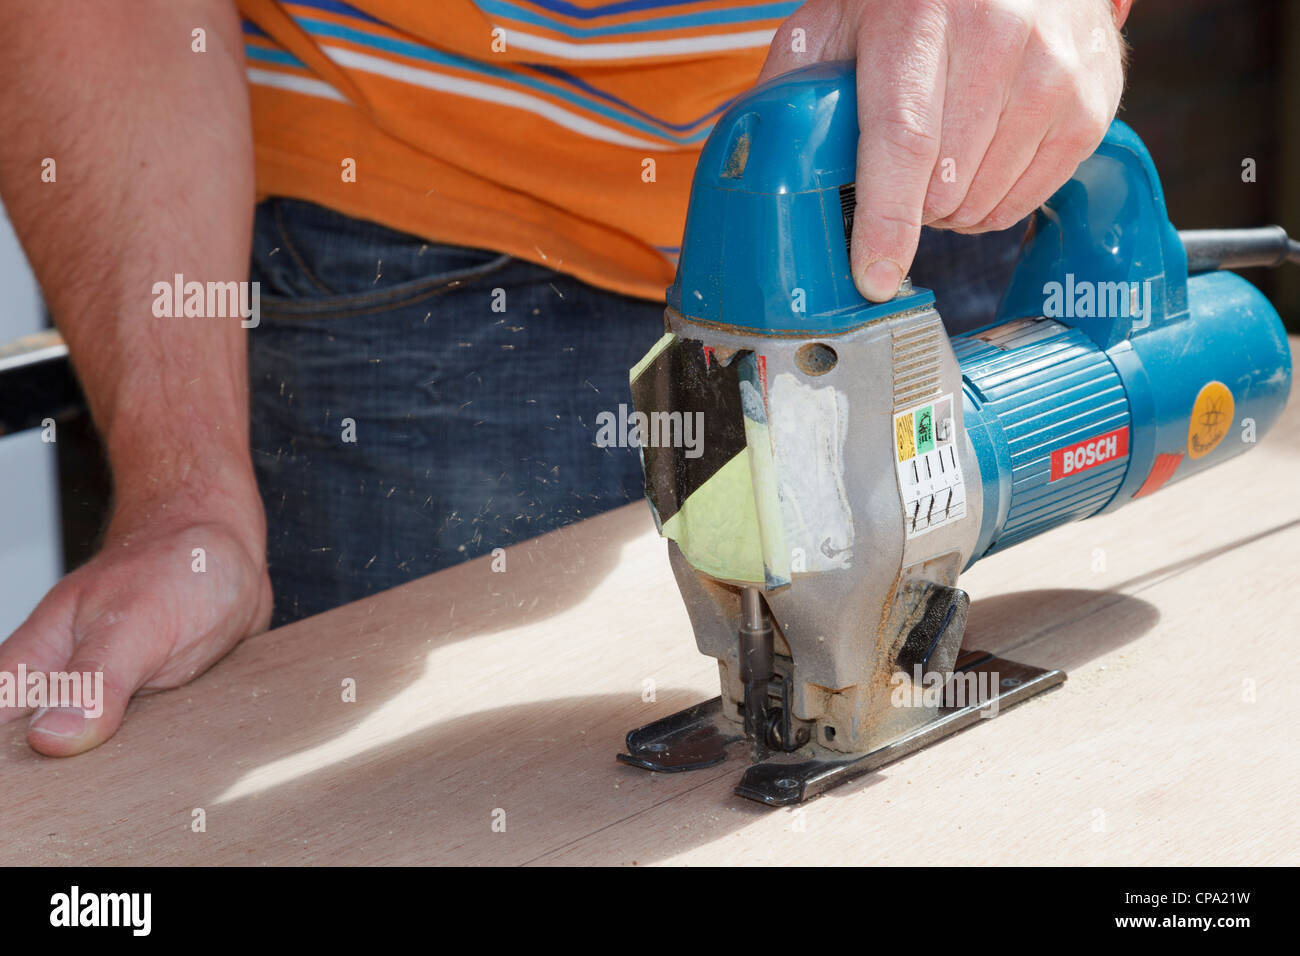 A young man carpenter cutting wood with an electric Bosch jigsaw powertool. England UK Britain - Stock Image